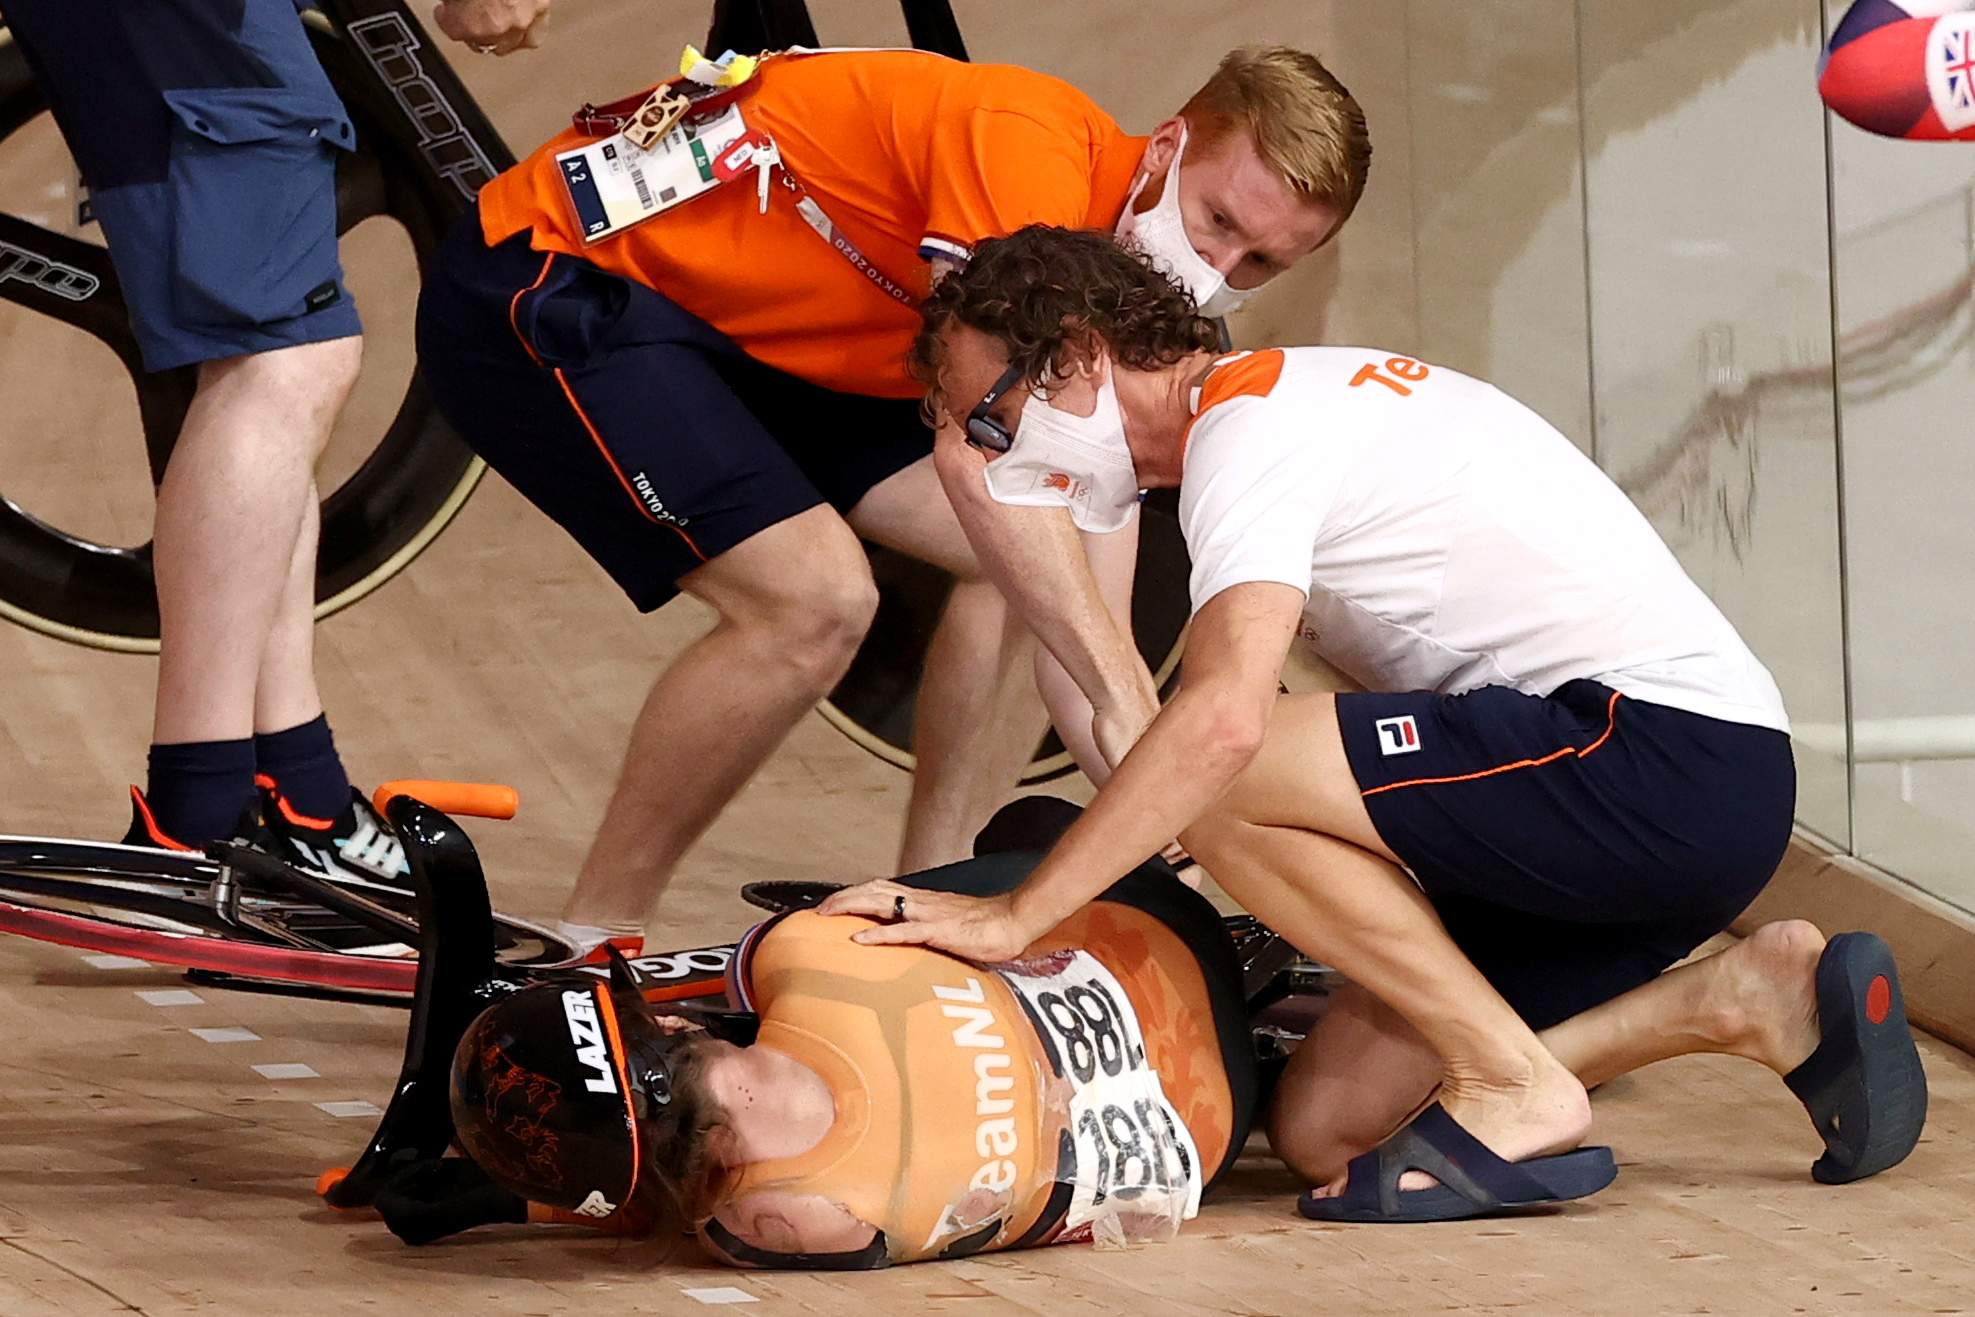 Tokyo 2020 Olympics - Cycling - Track - Women's Keirin - Quarterfinal - Izu Velodrome, Shizuoka, Japan - August 5, 2021.  Laurine van Riessen of the Netherlands receives medical attention after she crashes. REUTERS/Kacper Pempel